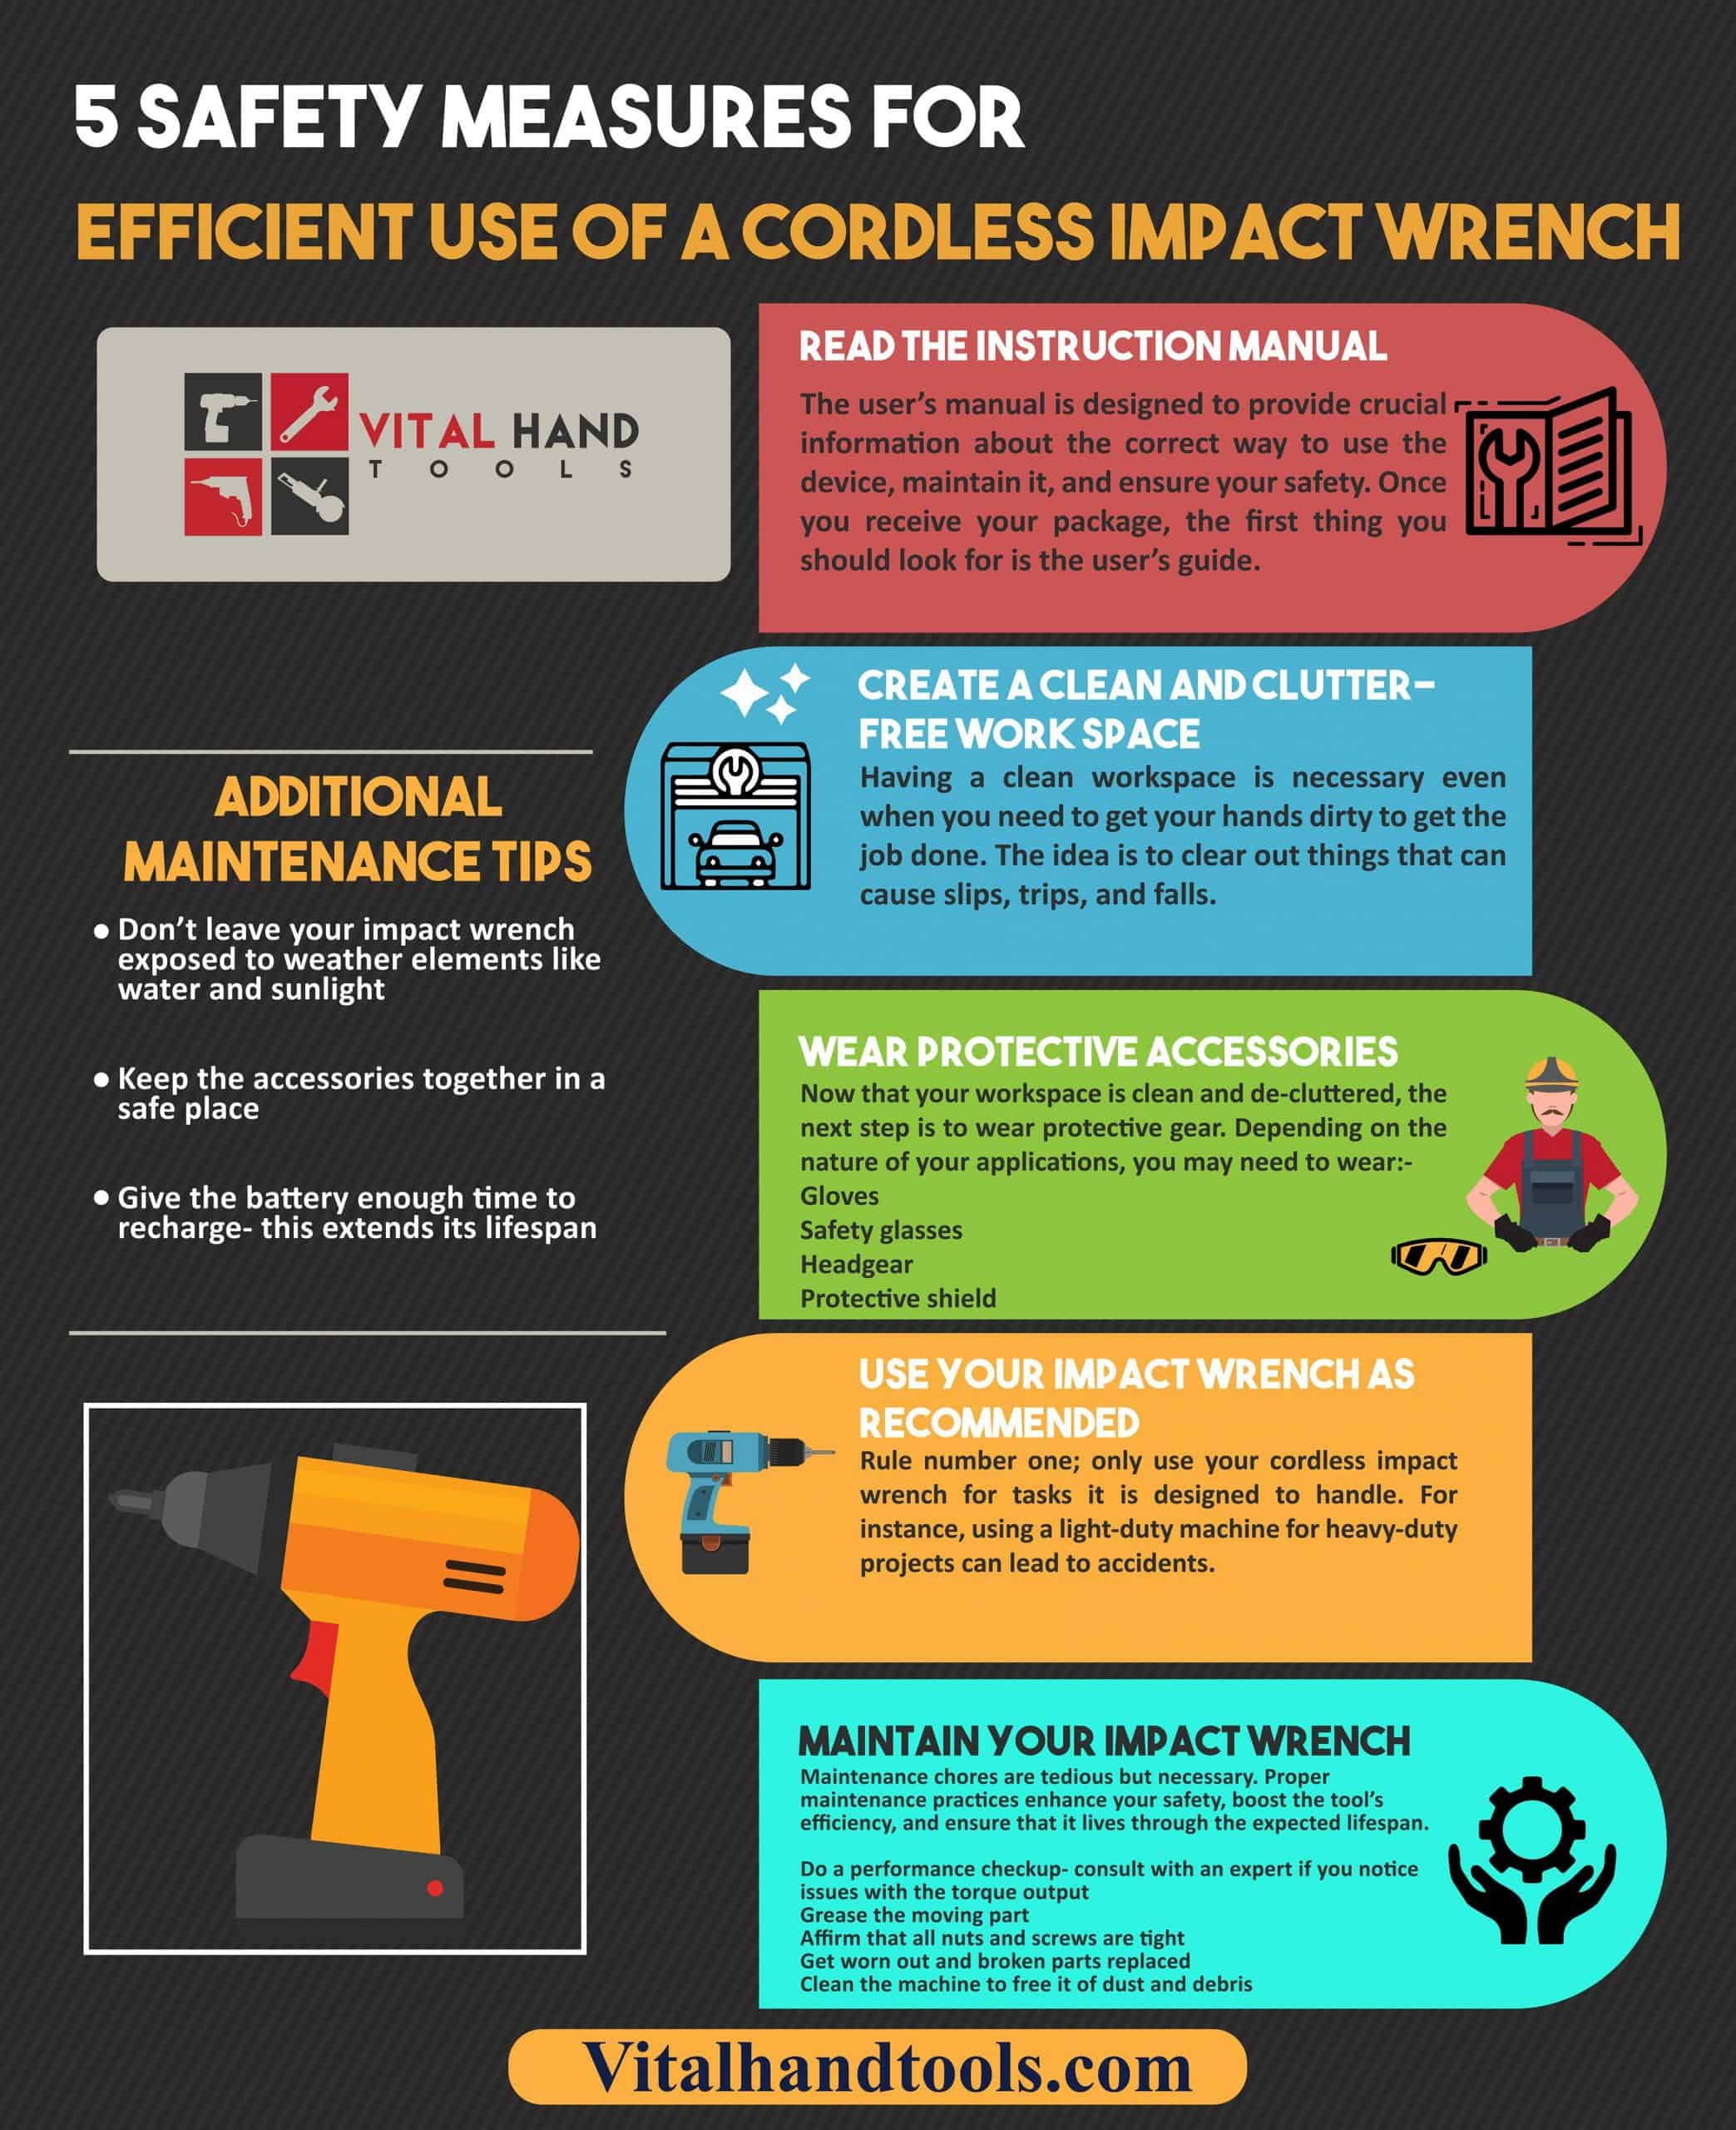 5 Important Safety Tips for Cordless Impact Wrench Safety 1